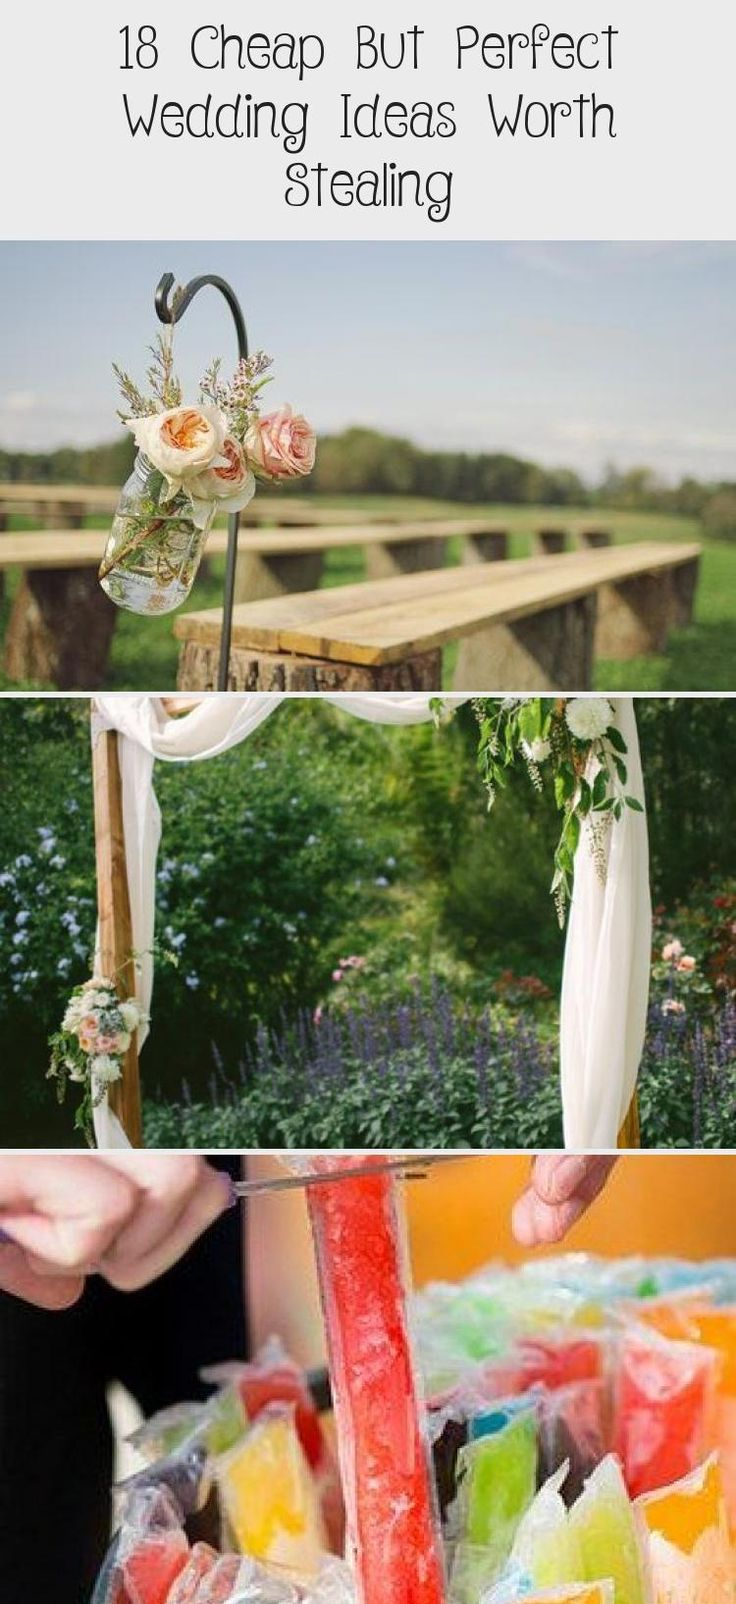 18 #Cheap But Perfect #Wedding Ideas Worth Stealing! #gardenweddingCenterpieces #Frenchgardenwedding #gardenweddingIdeas #gardenweddingSeating #Vintagegardenwedding